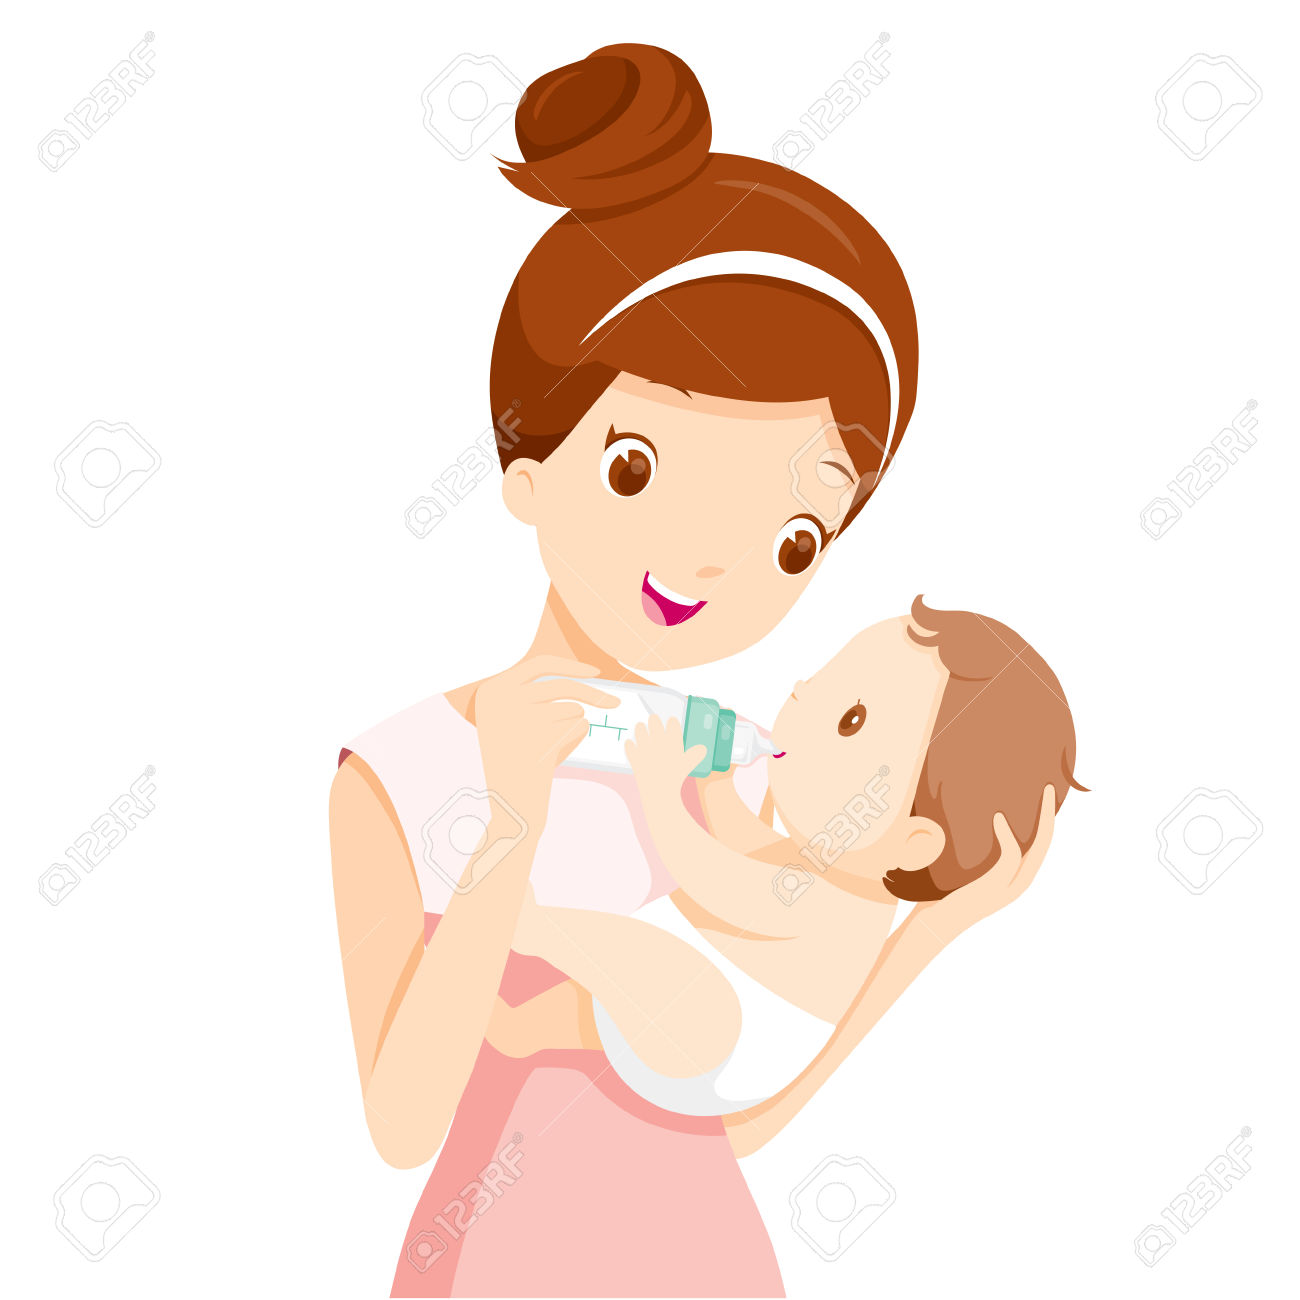 Feeding baby clipart image free stock Mother Feeding Baby With Milk In Baby Bottle » Clipart Station image free stock